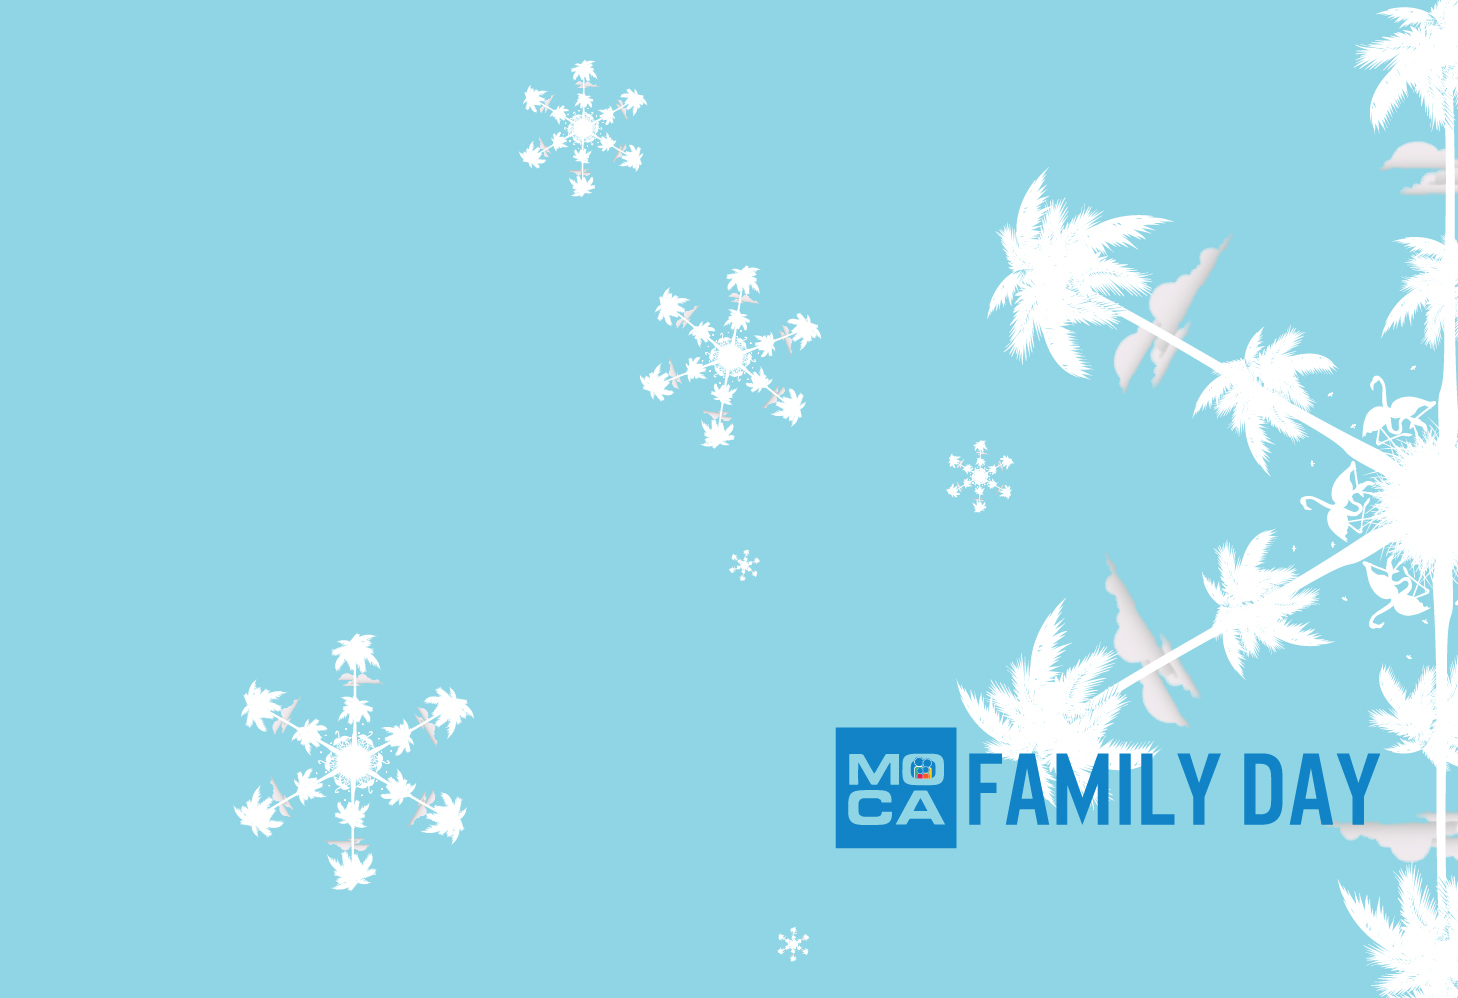 MOCA's Winter Family Day